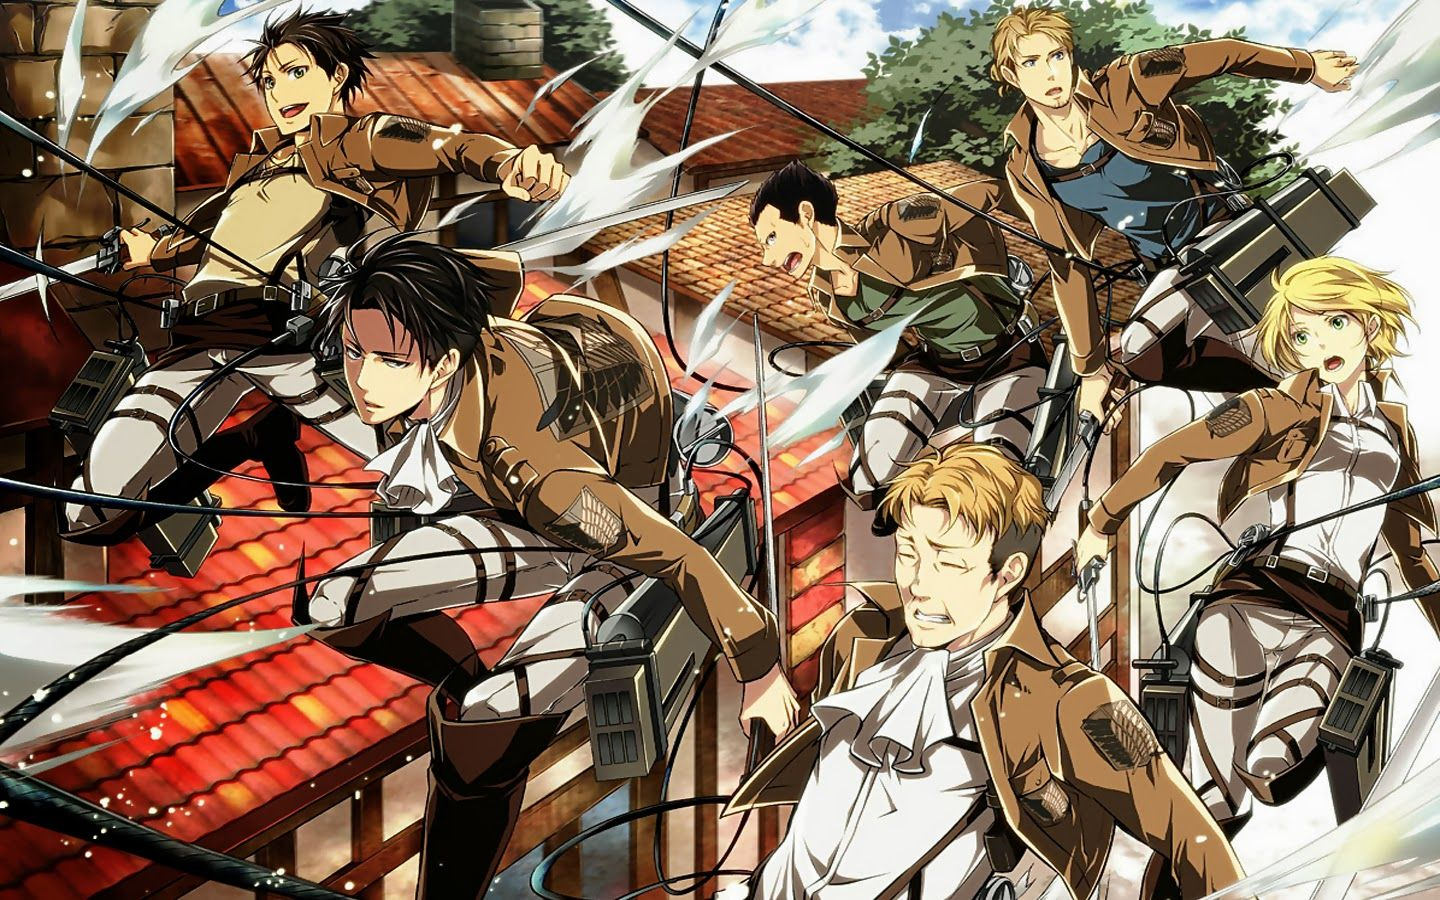 Pin By Carlie Redding On Attack On Titan Attack On Titan Attack On Titan Art Levi Squad